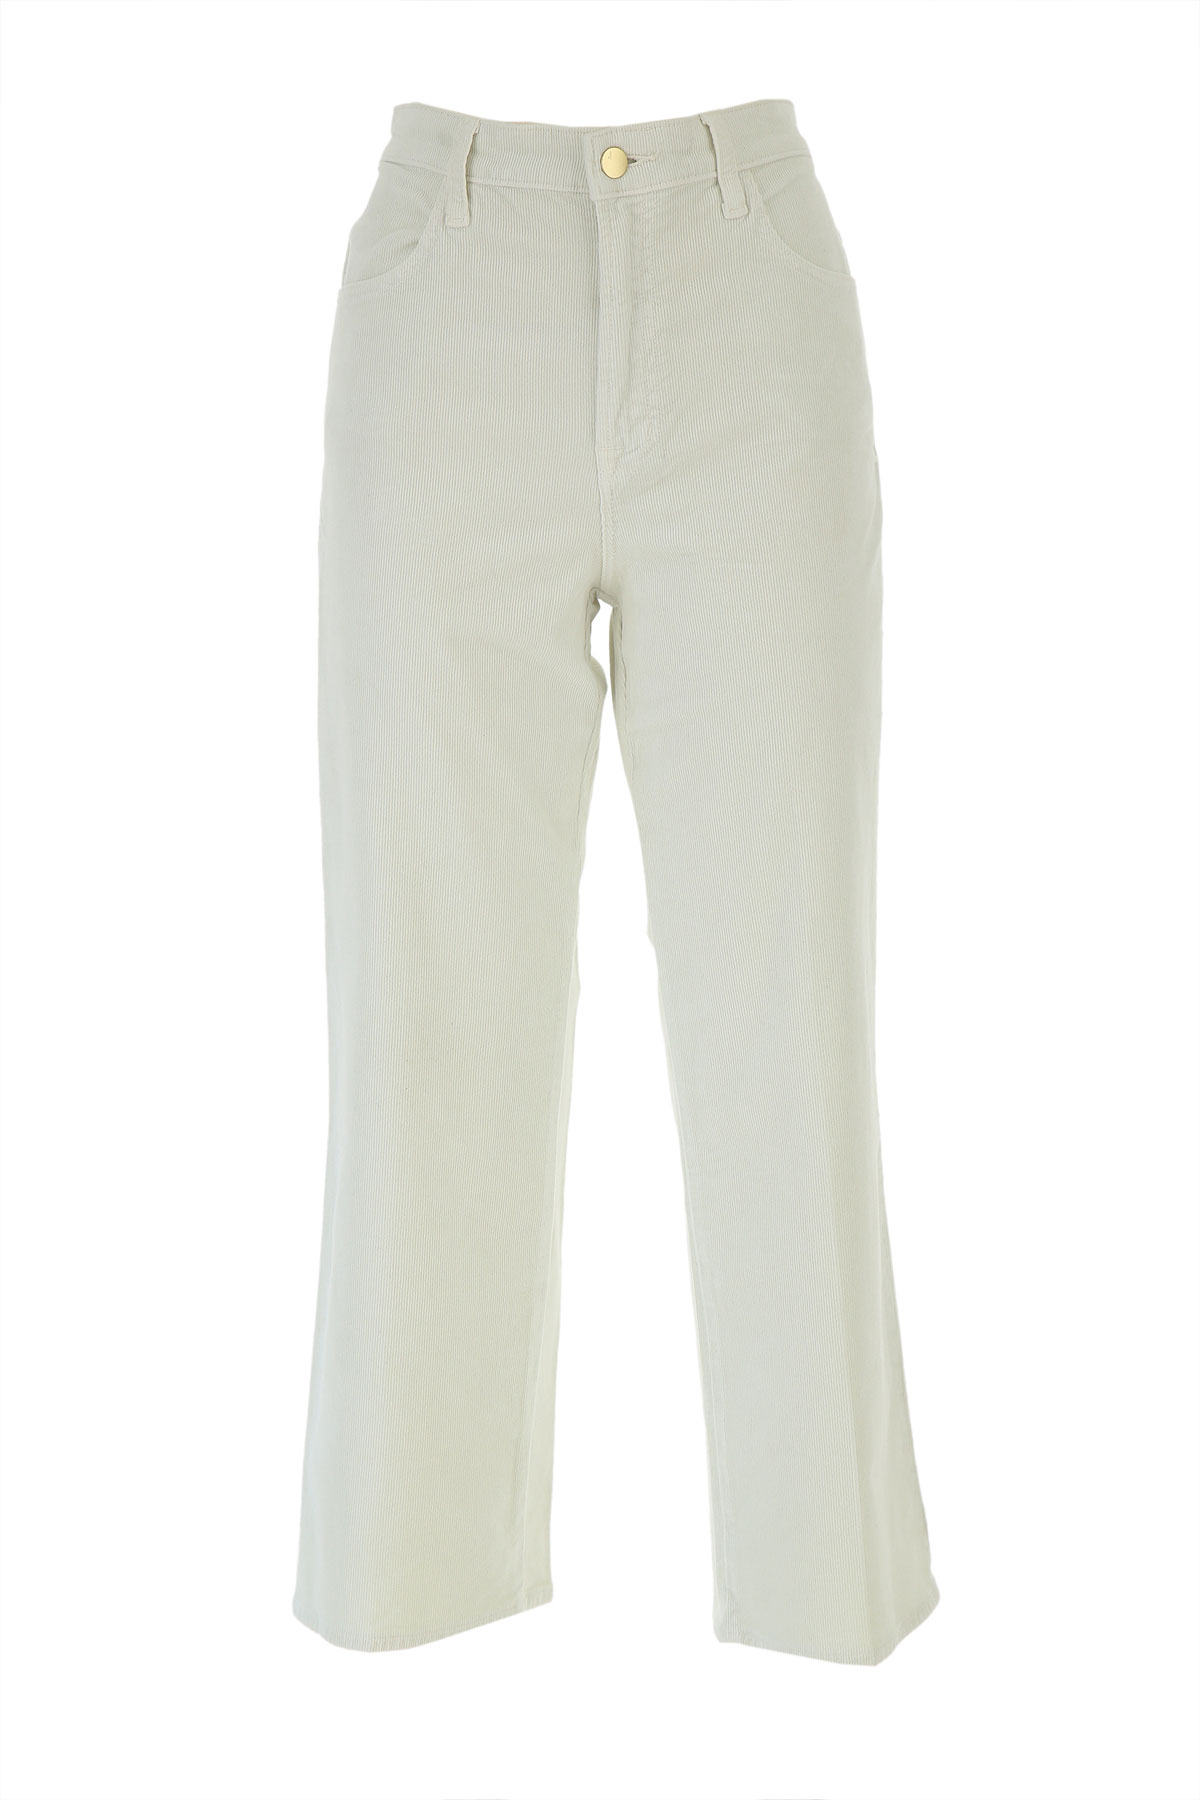 J Brand Pants for Women On Sale, Ice, Cotton, 2019, 24 25 26 27